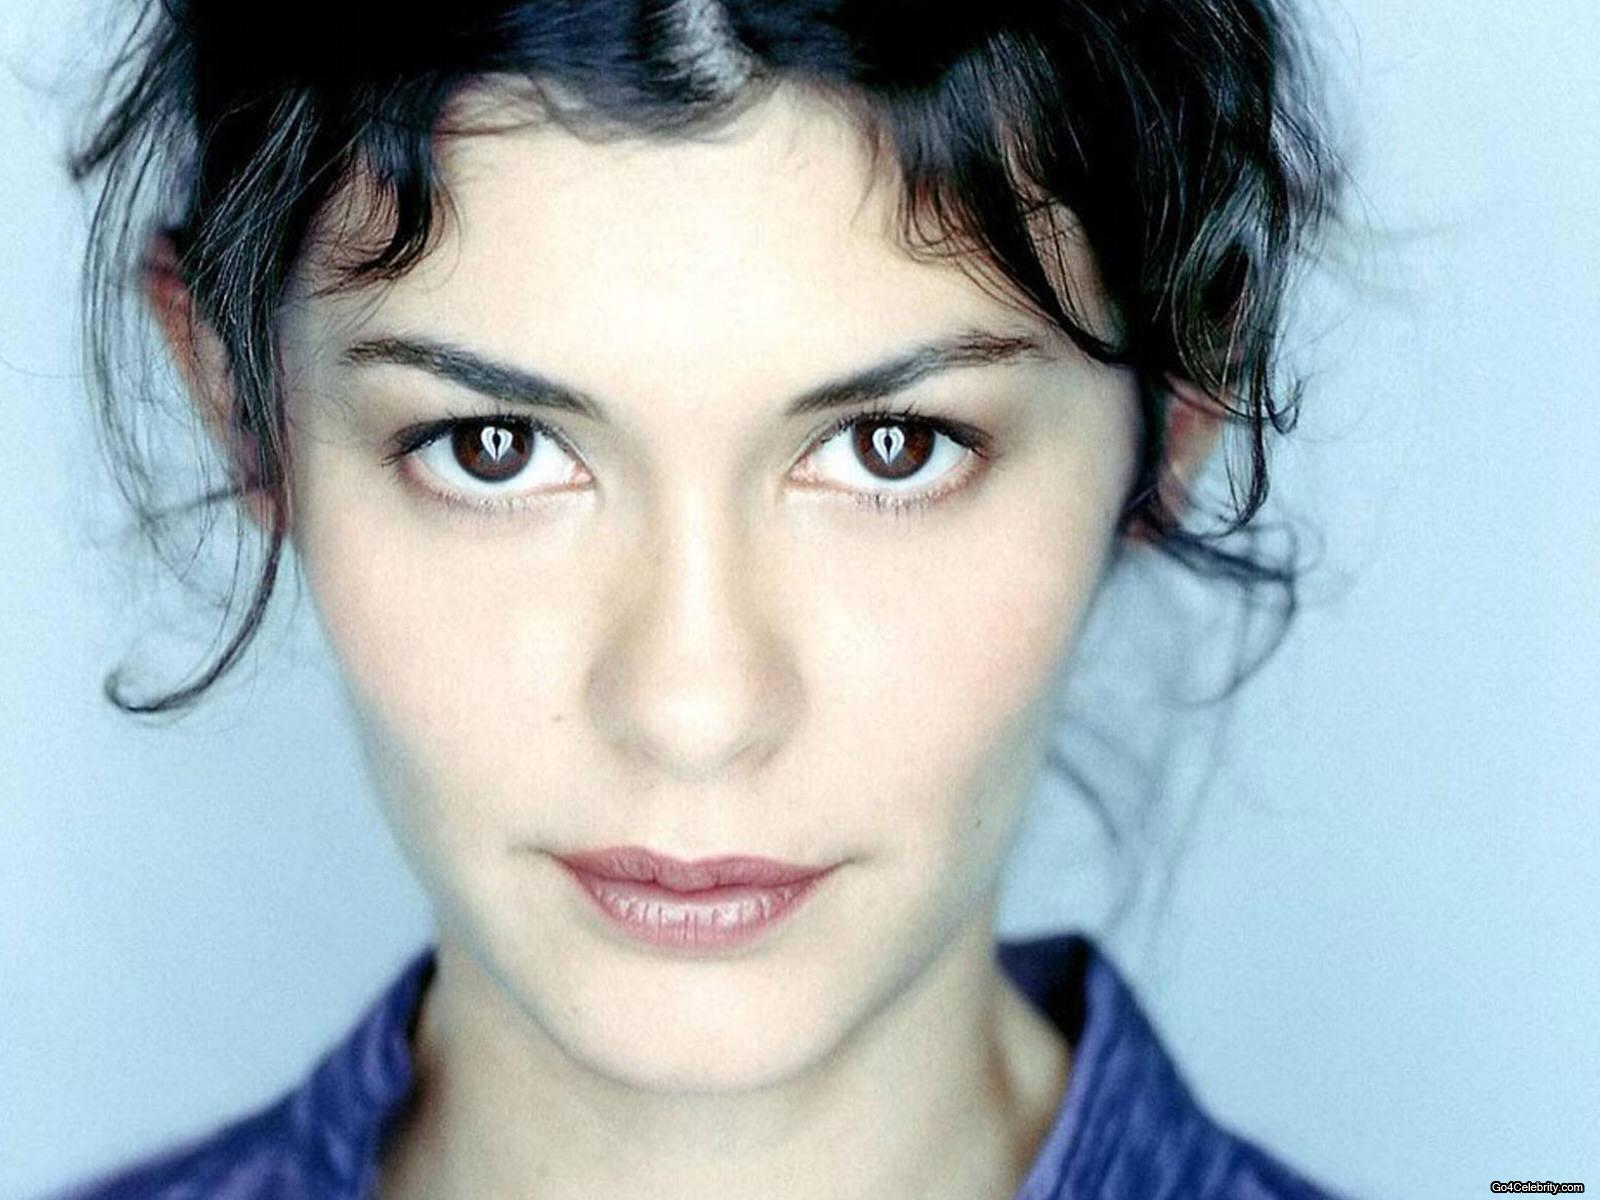 Agree, remarkable french actress audrey tautou nude amelie from